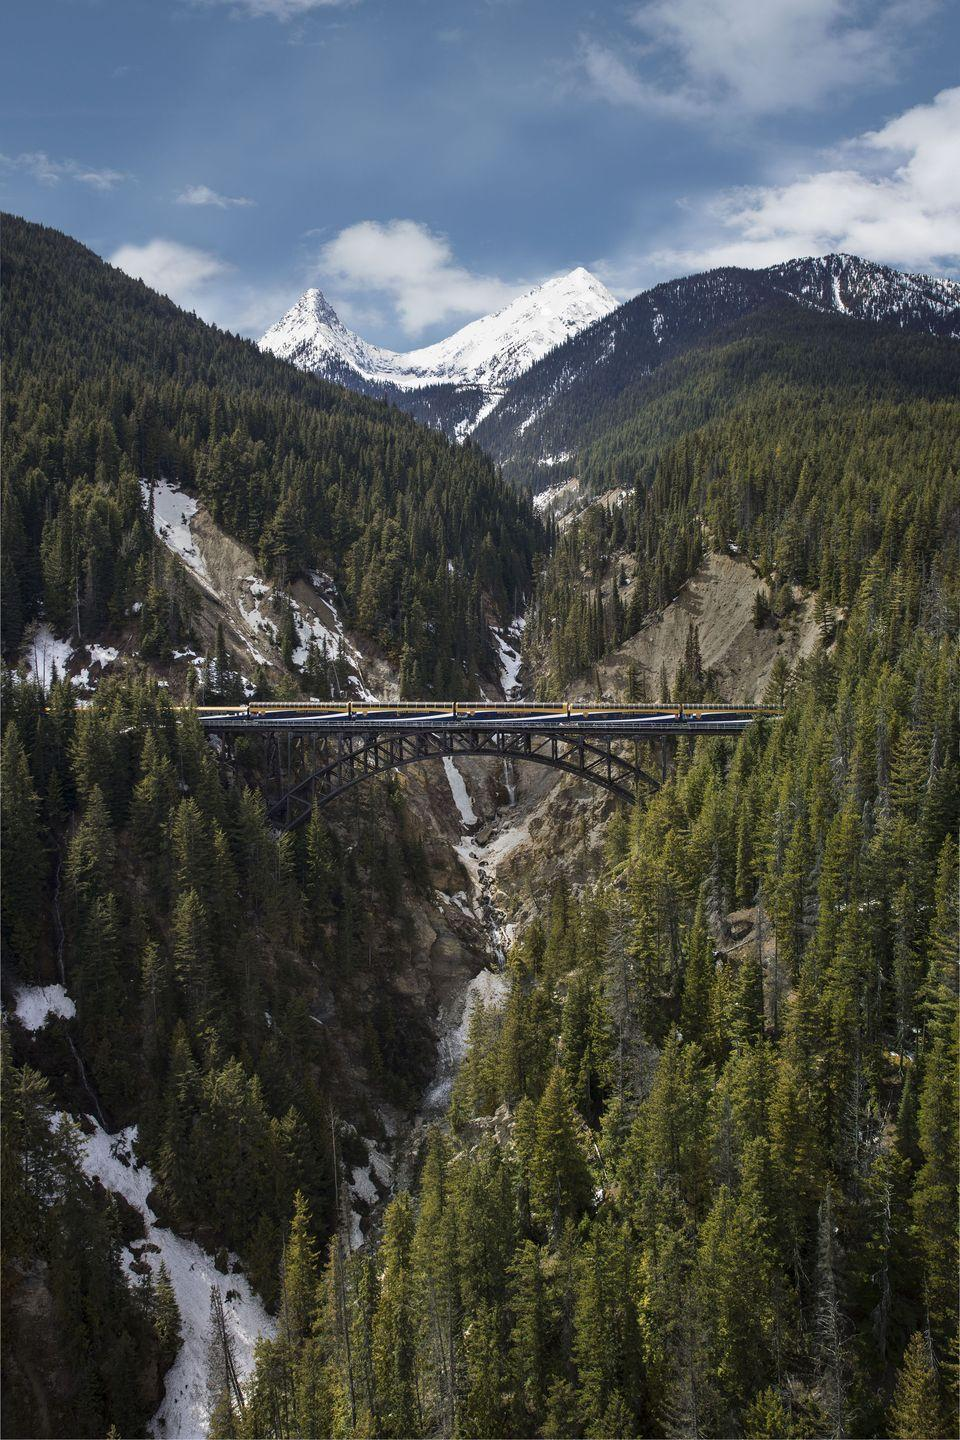 """<p>There's a reason why Rocky Mountaineer holidays appear on so many bucket lists: they offer one-of-a-kind experiences you won't find anywhere else. So, what are you waiting for? Check out our exclusive Rocky Mountaineer train escape, with departures between April and October 2021.</p><p><a class=""""link rapid-noclick-resp"""" href=""""https://www.goodhousekeepingholidays.com/tours/canada-rocky-mountaineer"""" rel=""""nofollow noopener"""" target=""""_blank"""" data-ylk=""""slk:FIND OUT MORE"""">FIND OUT MORE</a></p><p><strong>We want to help you stay inspired. Sign up for the latest travel tales and to hear about our favourite financially protected escapes and bucket list adventures.</strong></p><p><a class=""""link rapid-noclick-resp"""" href=""""https://hearst.emsecure.net/optiext/optiextension.dll?ID=Mf2Mbm2t6kFIB2qaqu7QV5QAIooPPMrcO%2BU6d2SmsL4zpSgeyQIbzx5P9sbmxMKLhPooFIrsXaC2MY"""" rel=""""nofollow noopener"""" target=""""_blank"""" data-ylk=""""slk:SIGN UP"""">SIGN UP</a></p>"""